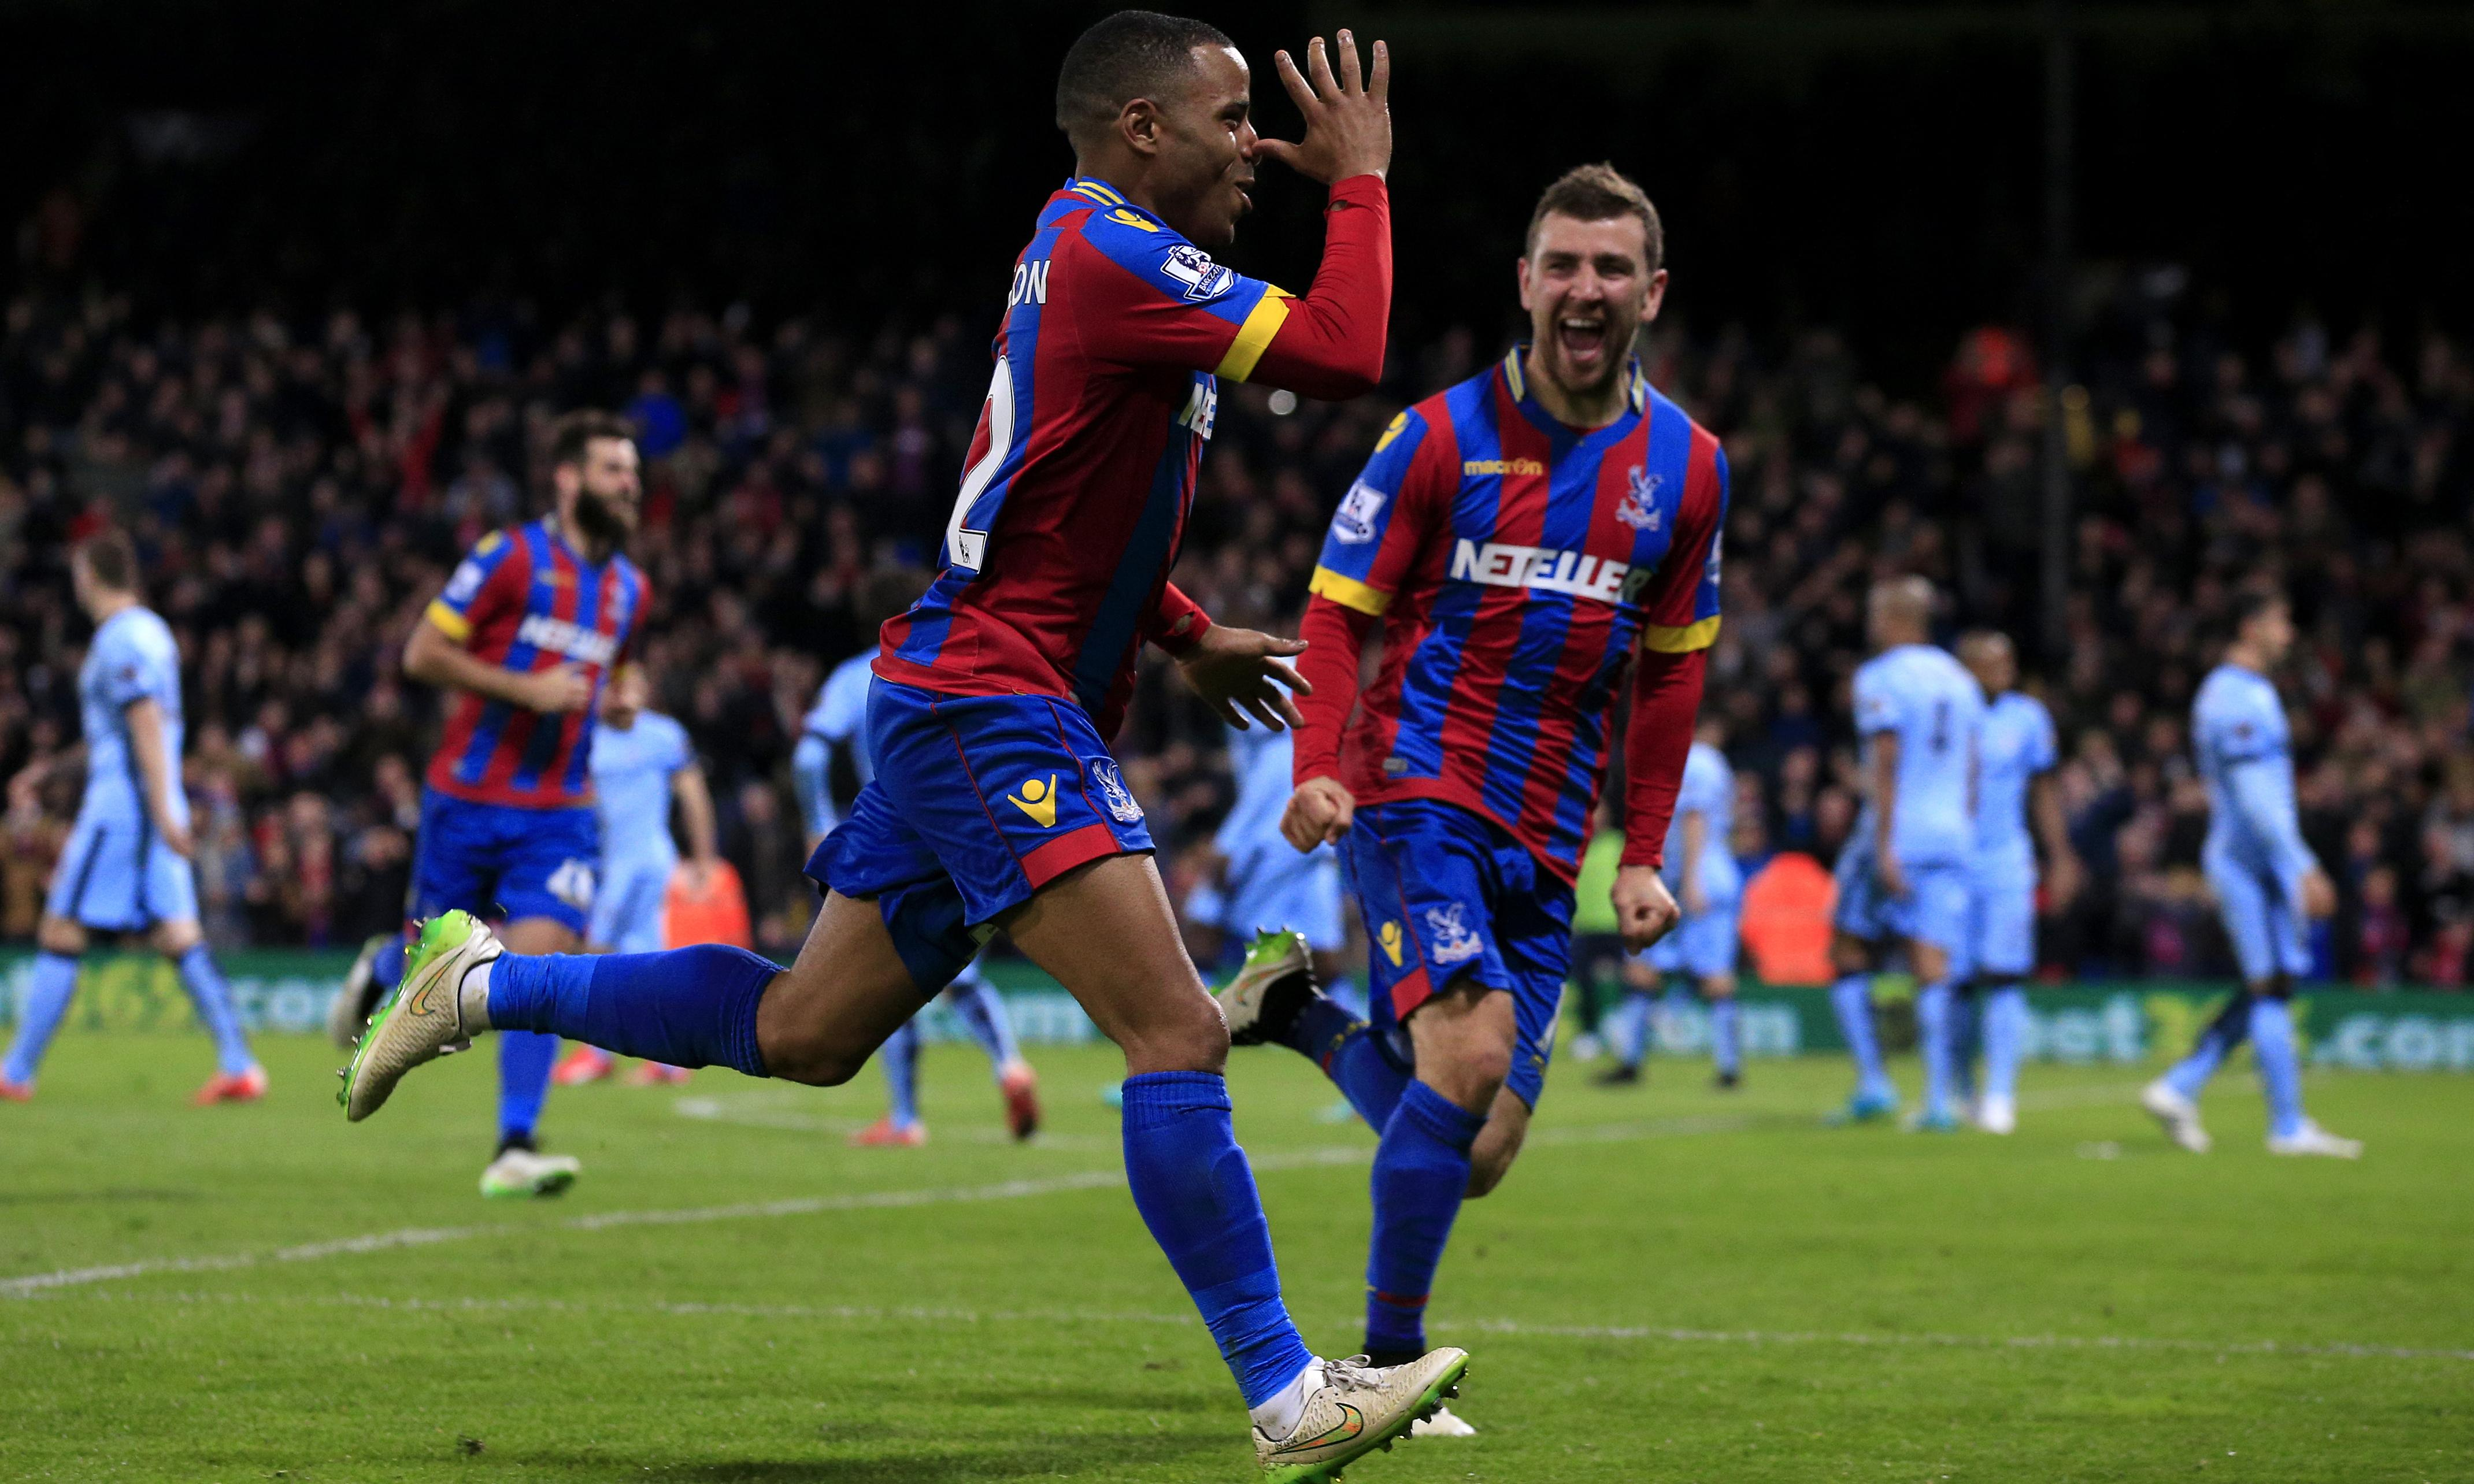 Crystal Palace and the knack: how the Eagles became Man City's bogey team